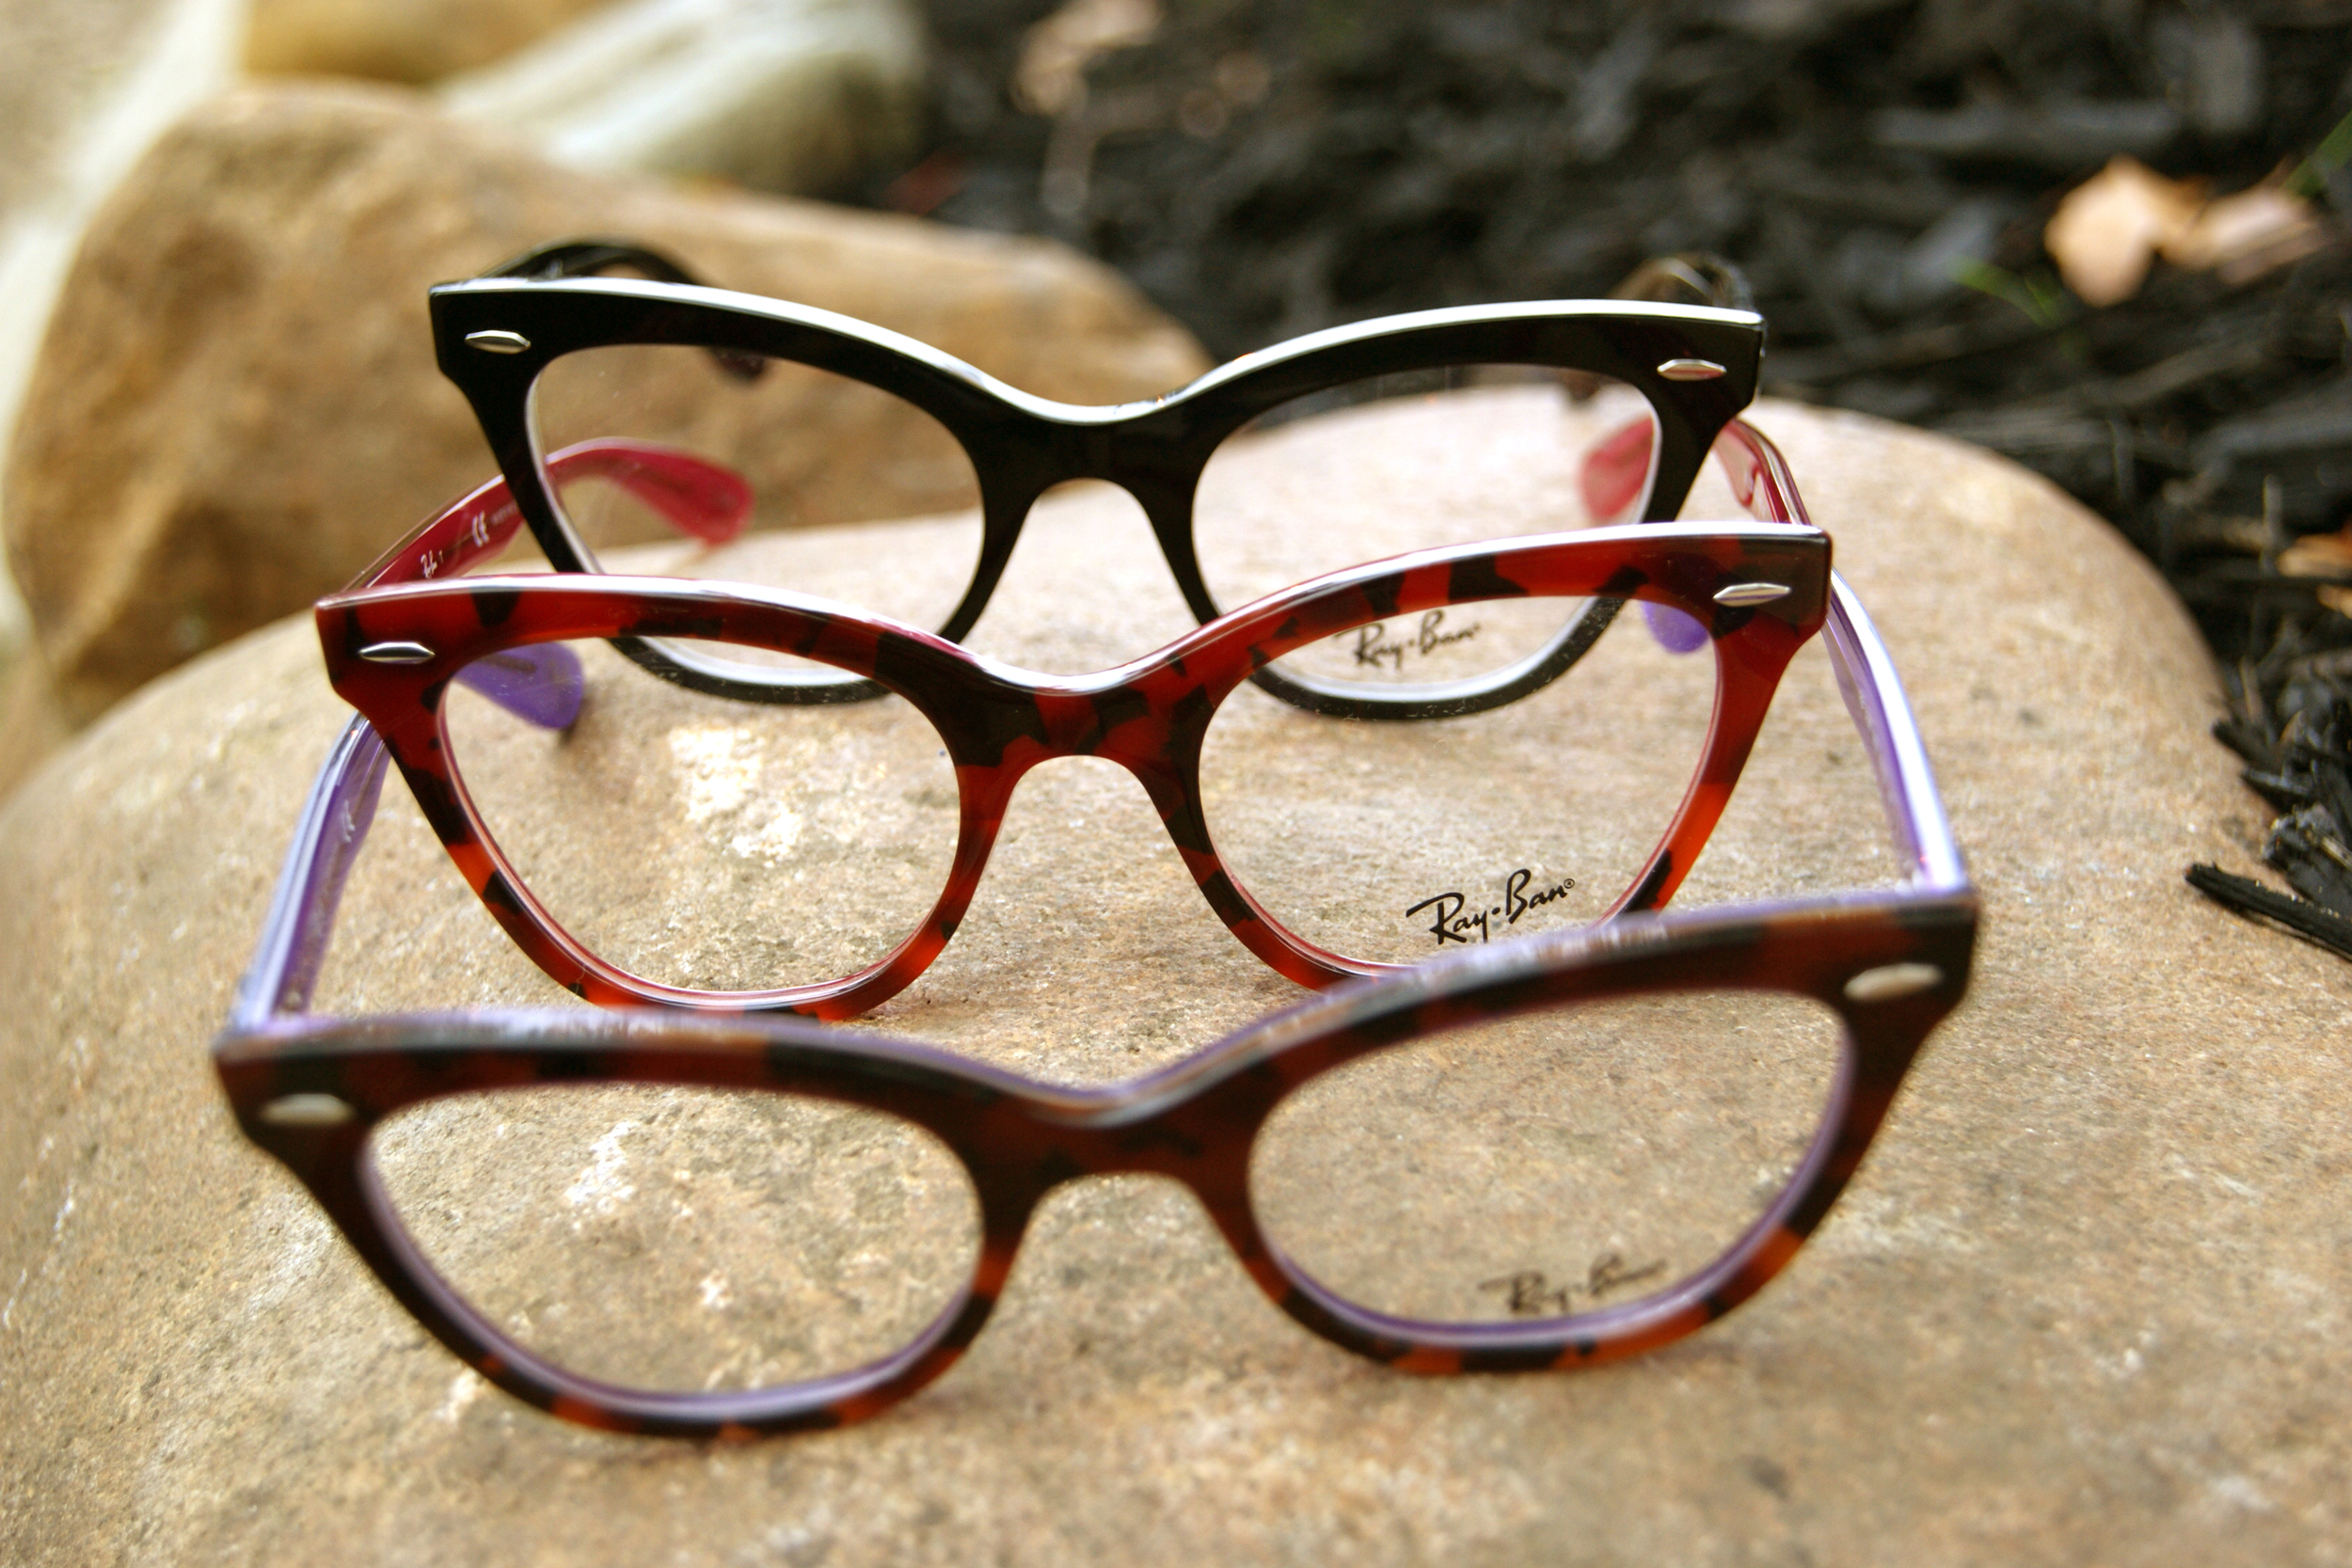 Ray Ban womens eyeglasses.jpg